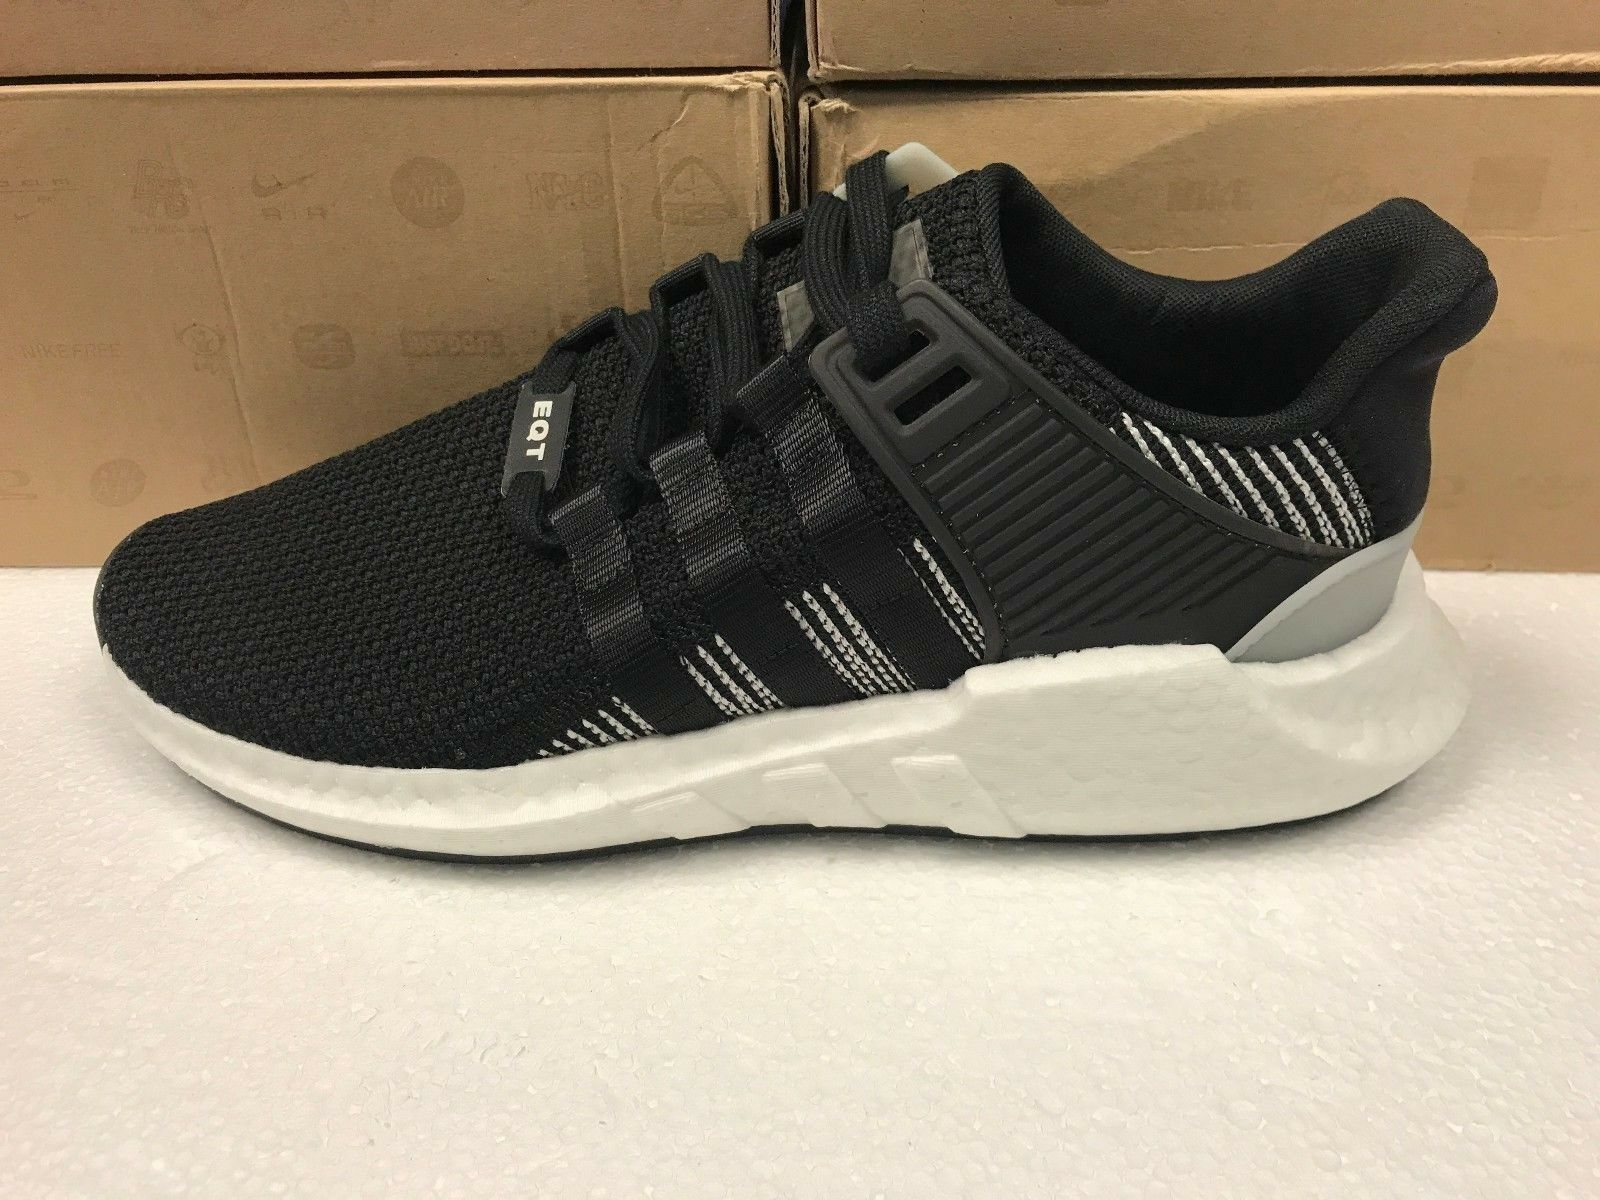 3d0fa42637ba adidas Mens 9 EQT Support 93 17 Primeknit Boost BY9509 Lifestyle Shoes for  sale online